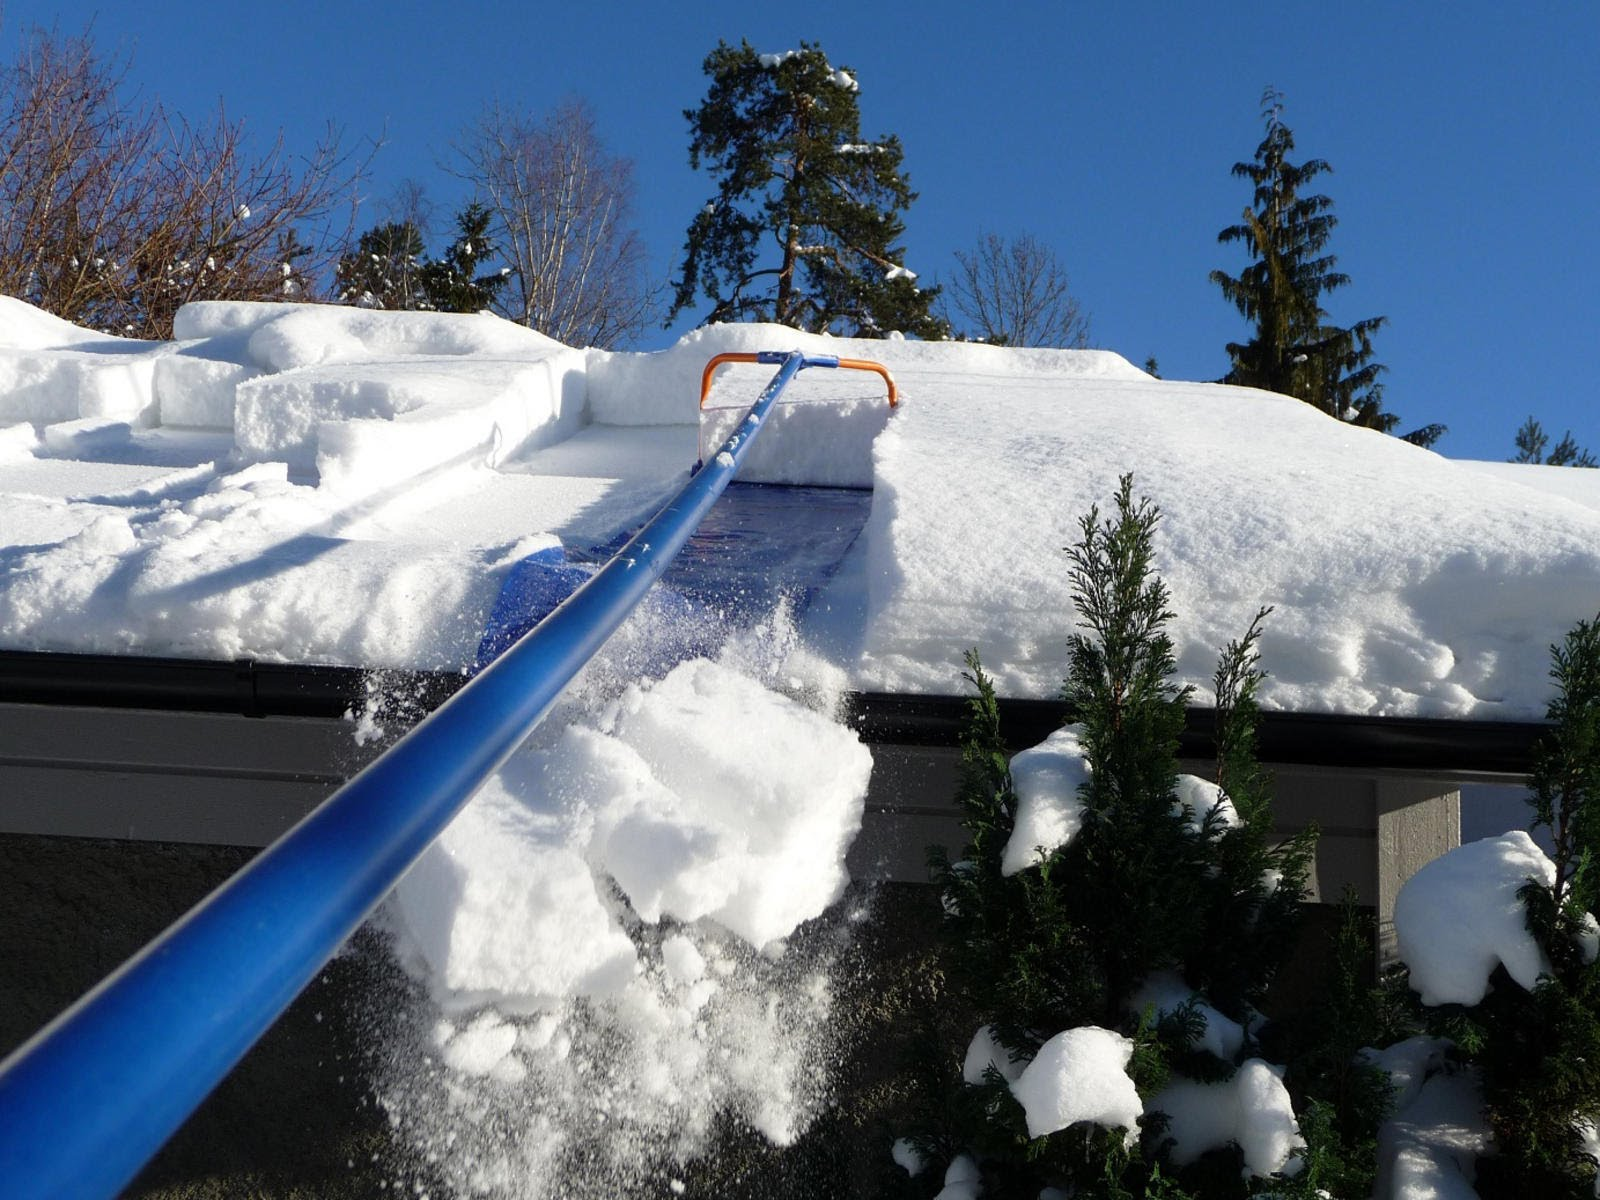 Commercial Flat Rooftop Snow Removal Service Ct Affordable Rates Reviews Roofing Companies